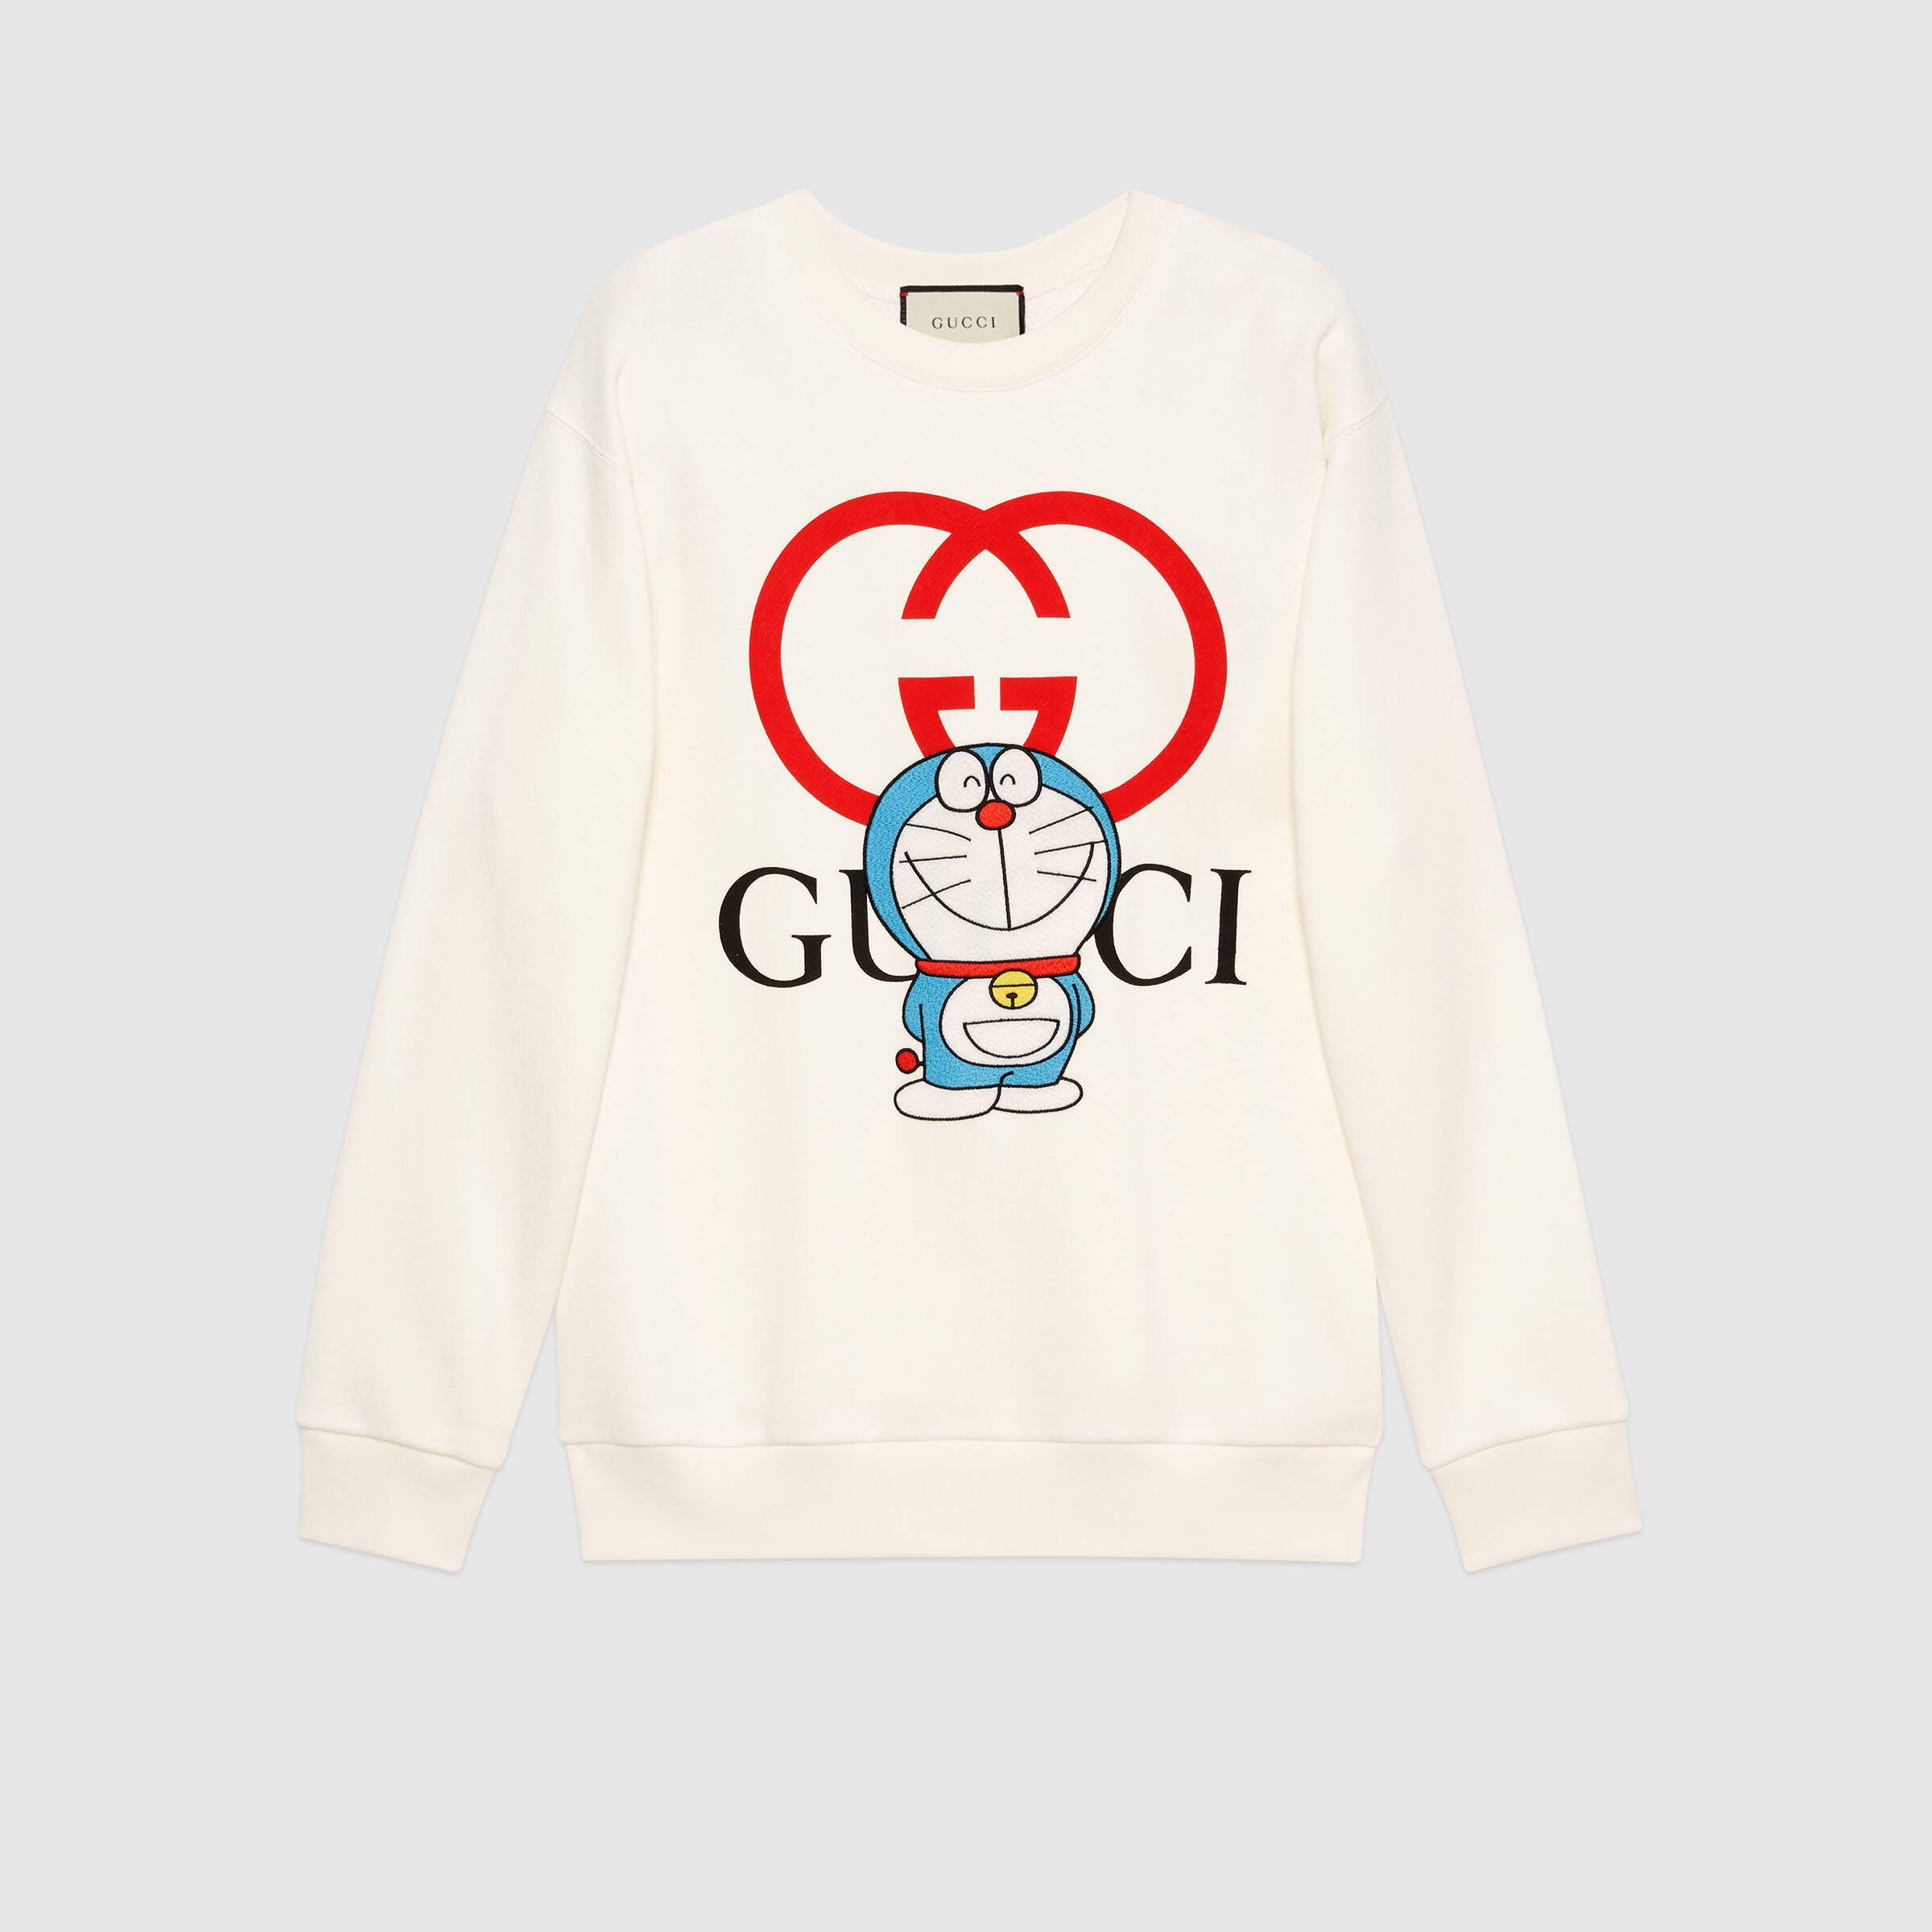 Gucci's limited edition Doraemon sweatshirt